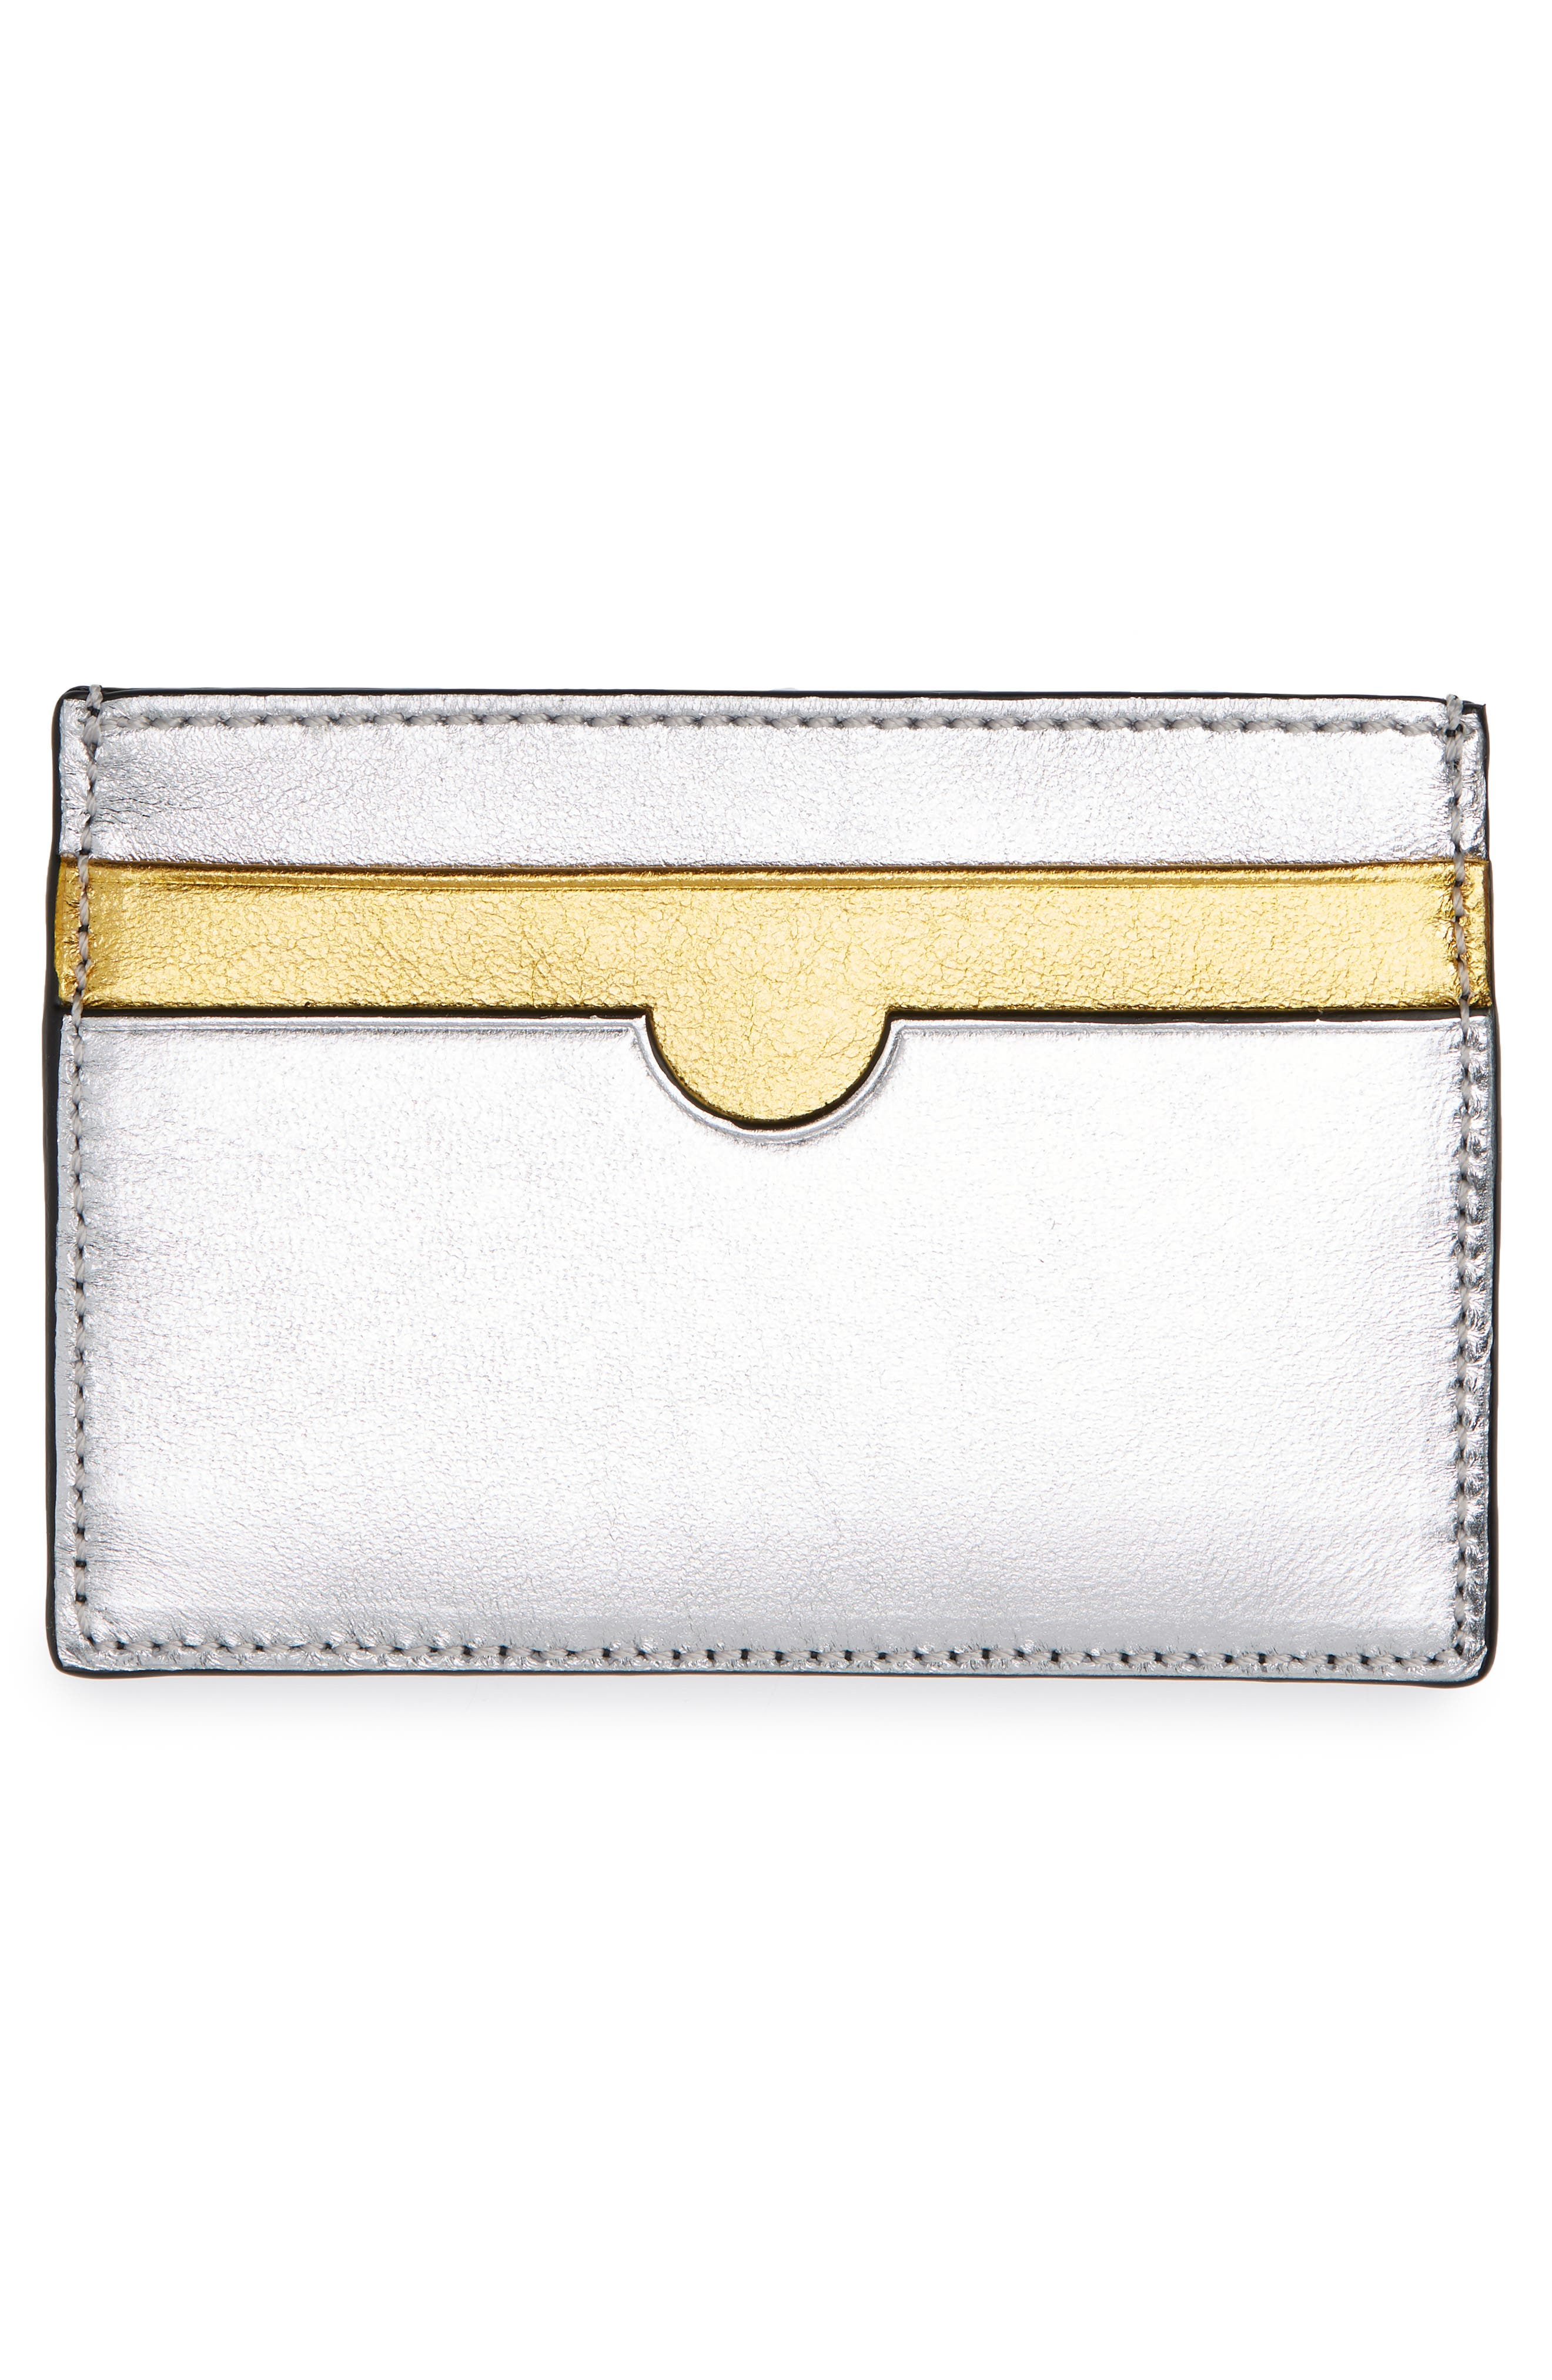 Rainbow Leather Card Holder,                             Alternate thumbnail 2, color,                             GOLD/ SILVER